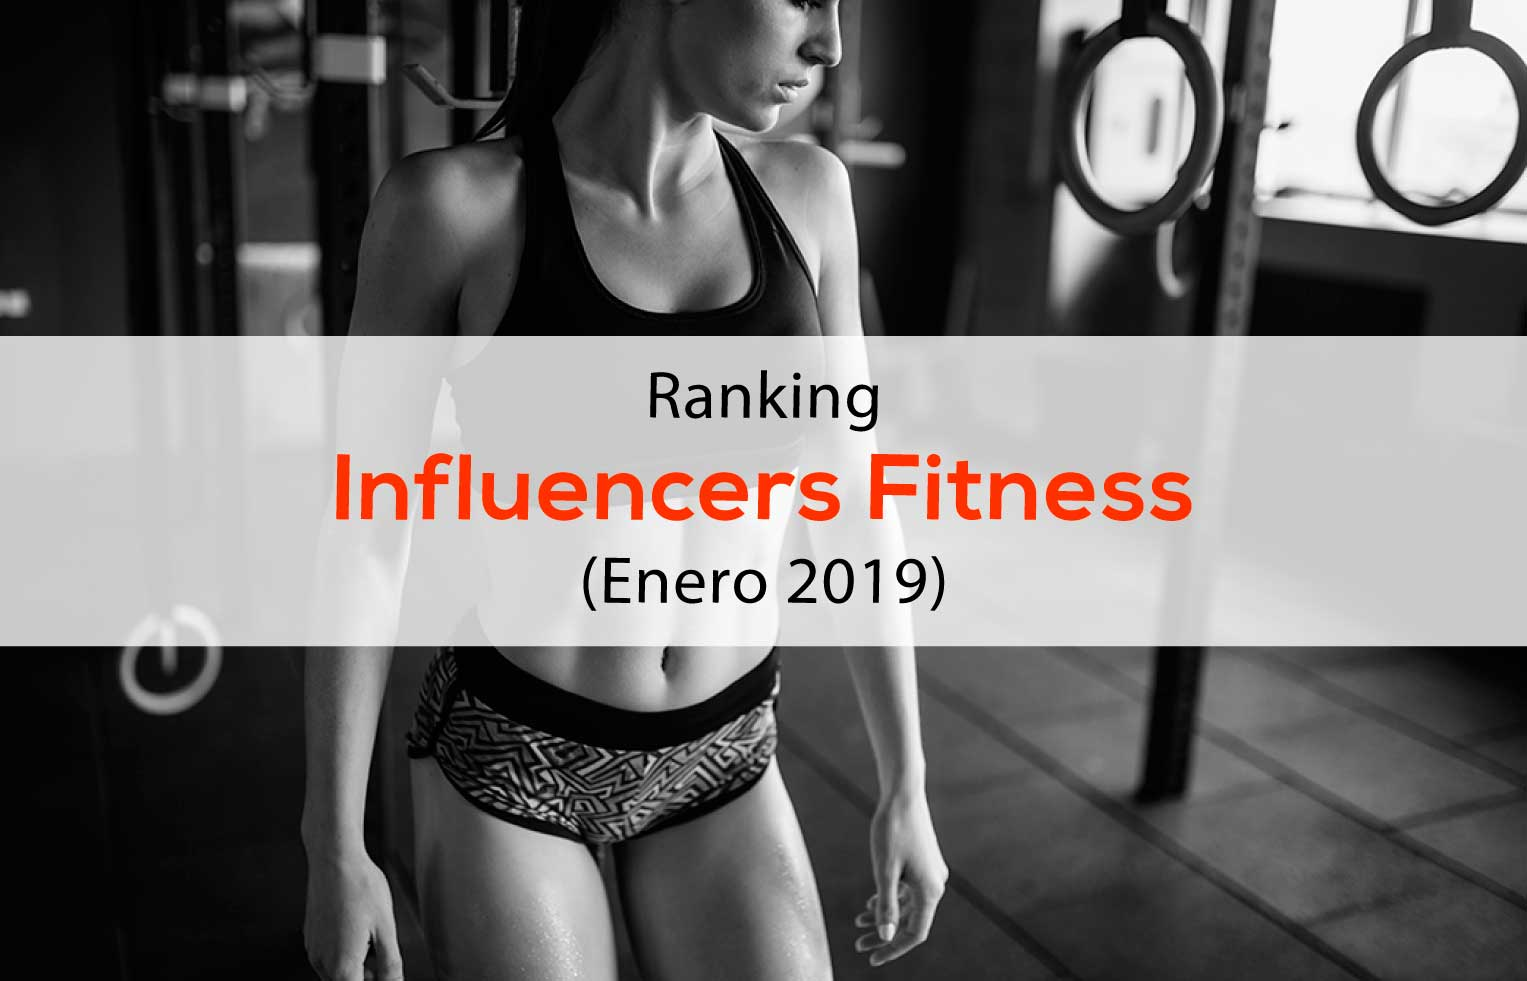 Ranking Influencers fitness